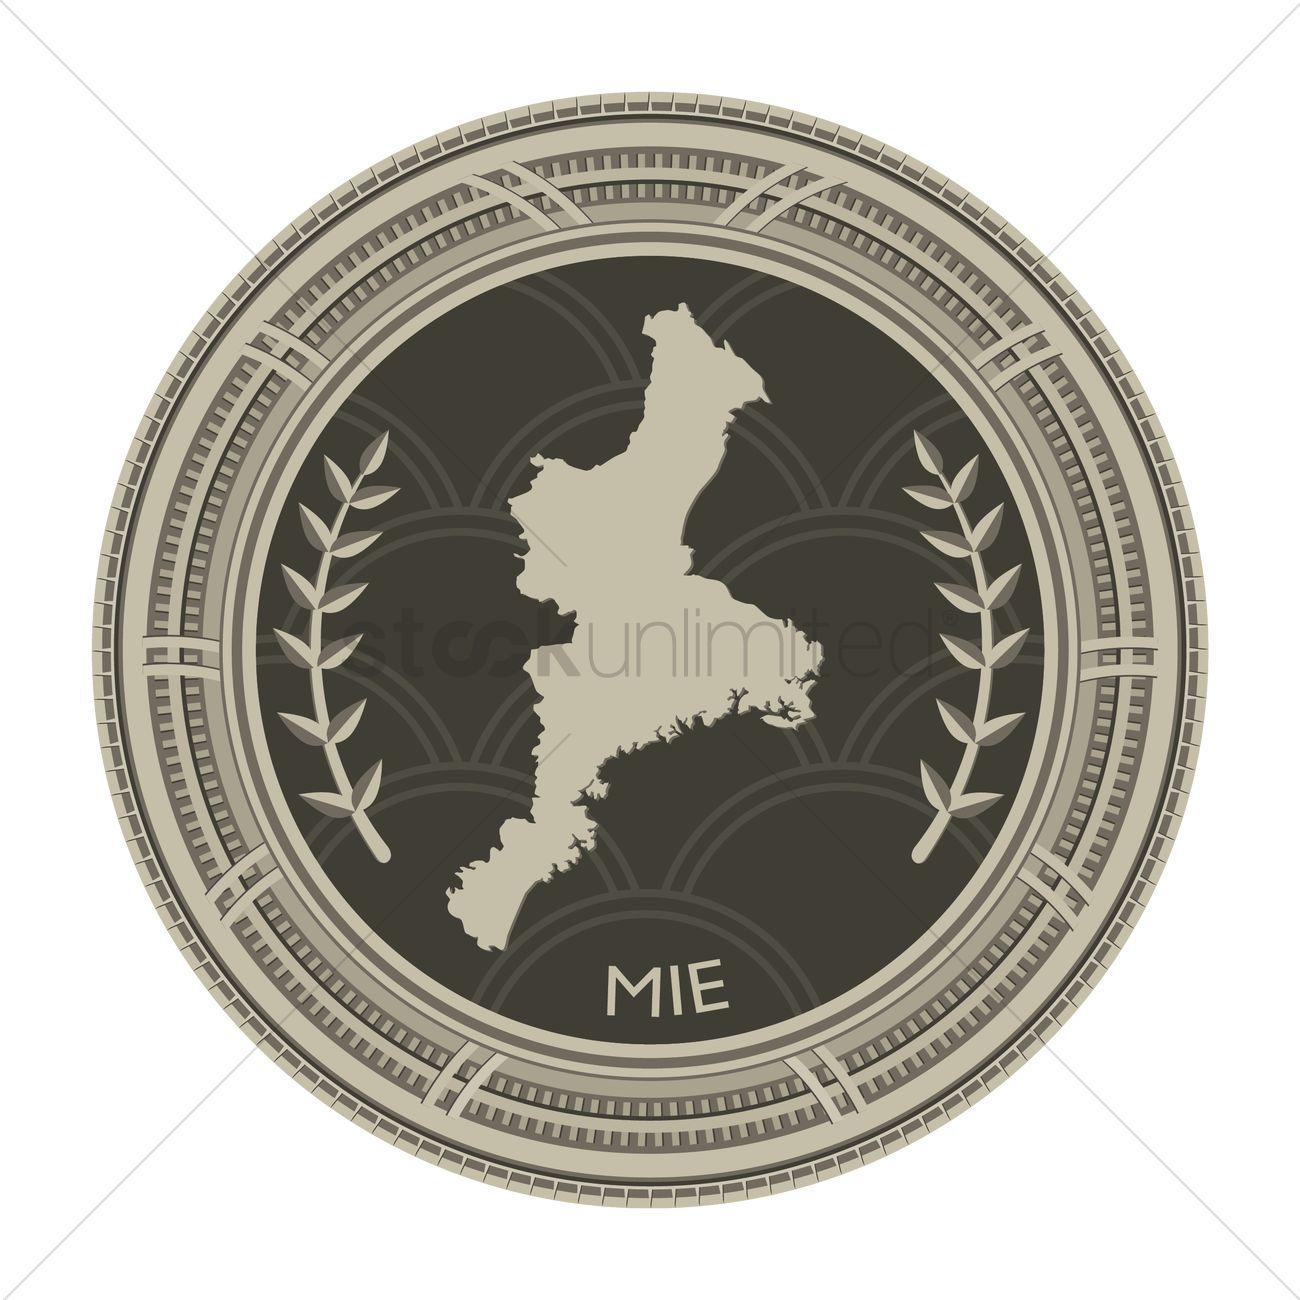 Mie map vector illustration , #Affiliate, #map, #Mie, #illustration, #vector #affiliate